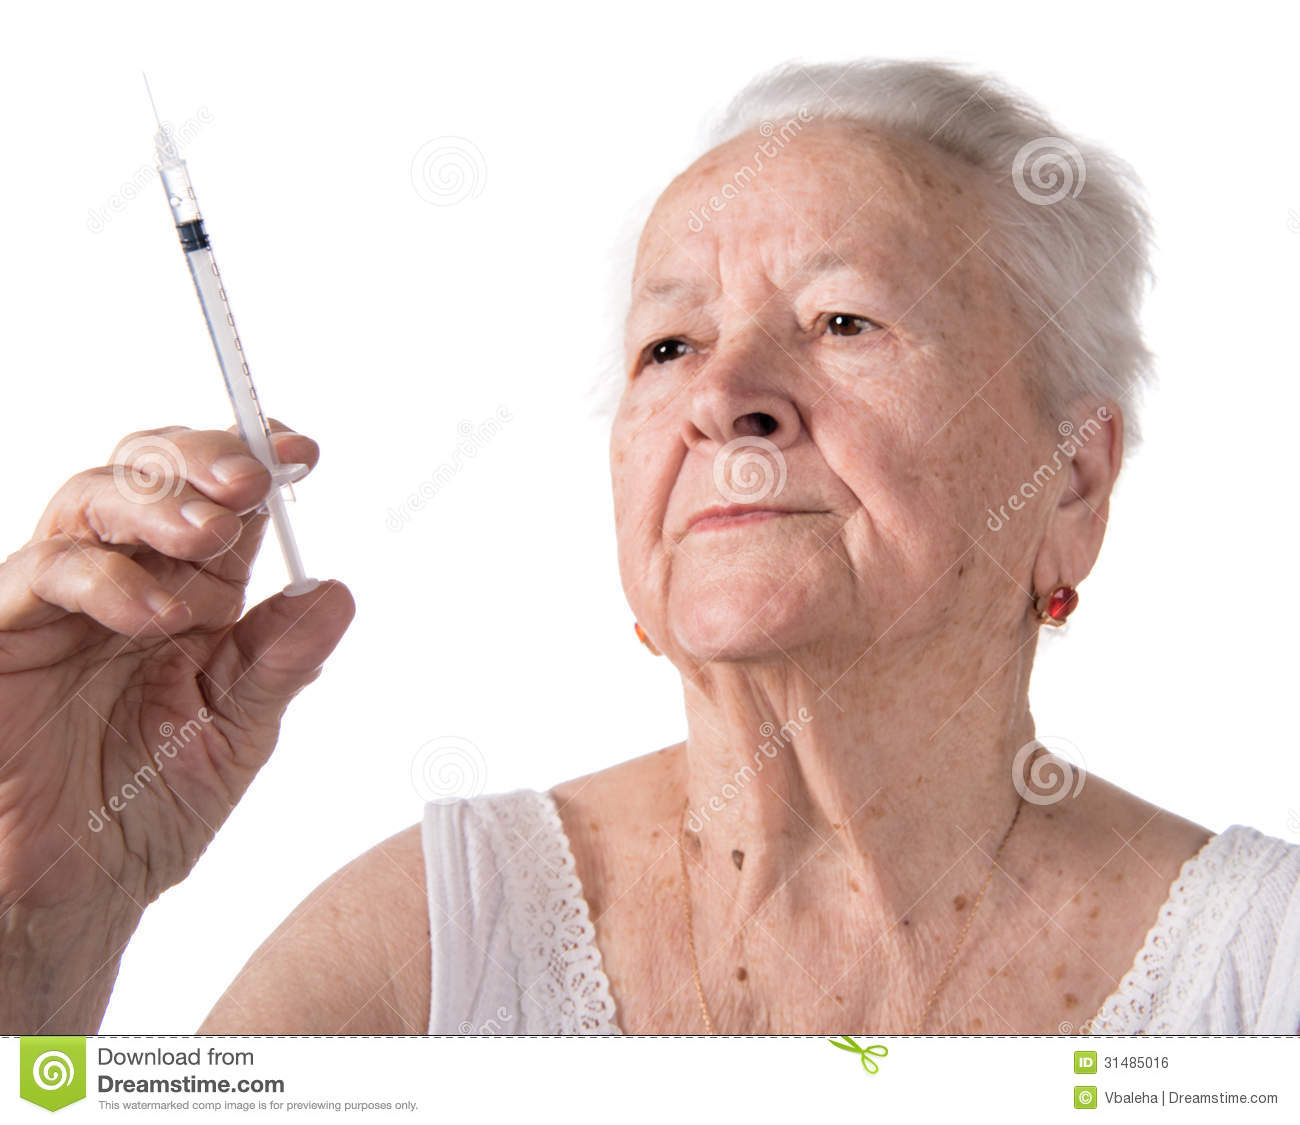 Anorexia likewise Royalty Free Stock Image Old Woman Preparing Syringe Making Insulin Injection White Background Image31485016 as well Five Mental Health Apps further Ankle Injuries also Overview. on physical therapy plan